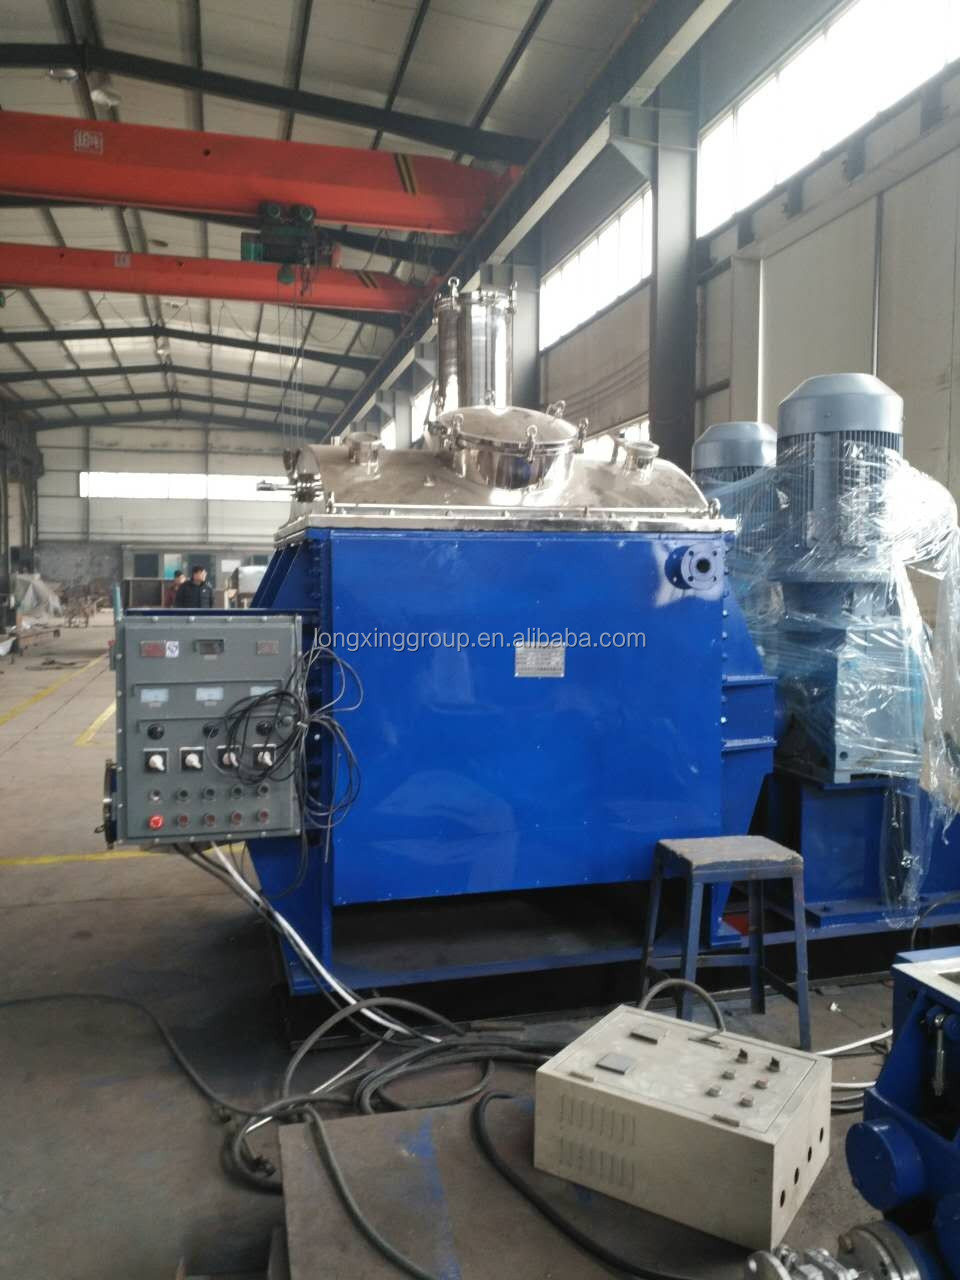 Clay kneading machine/Clay mixing kneader/Sigma mixer